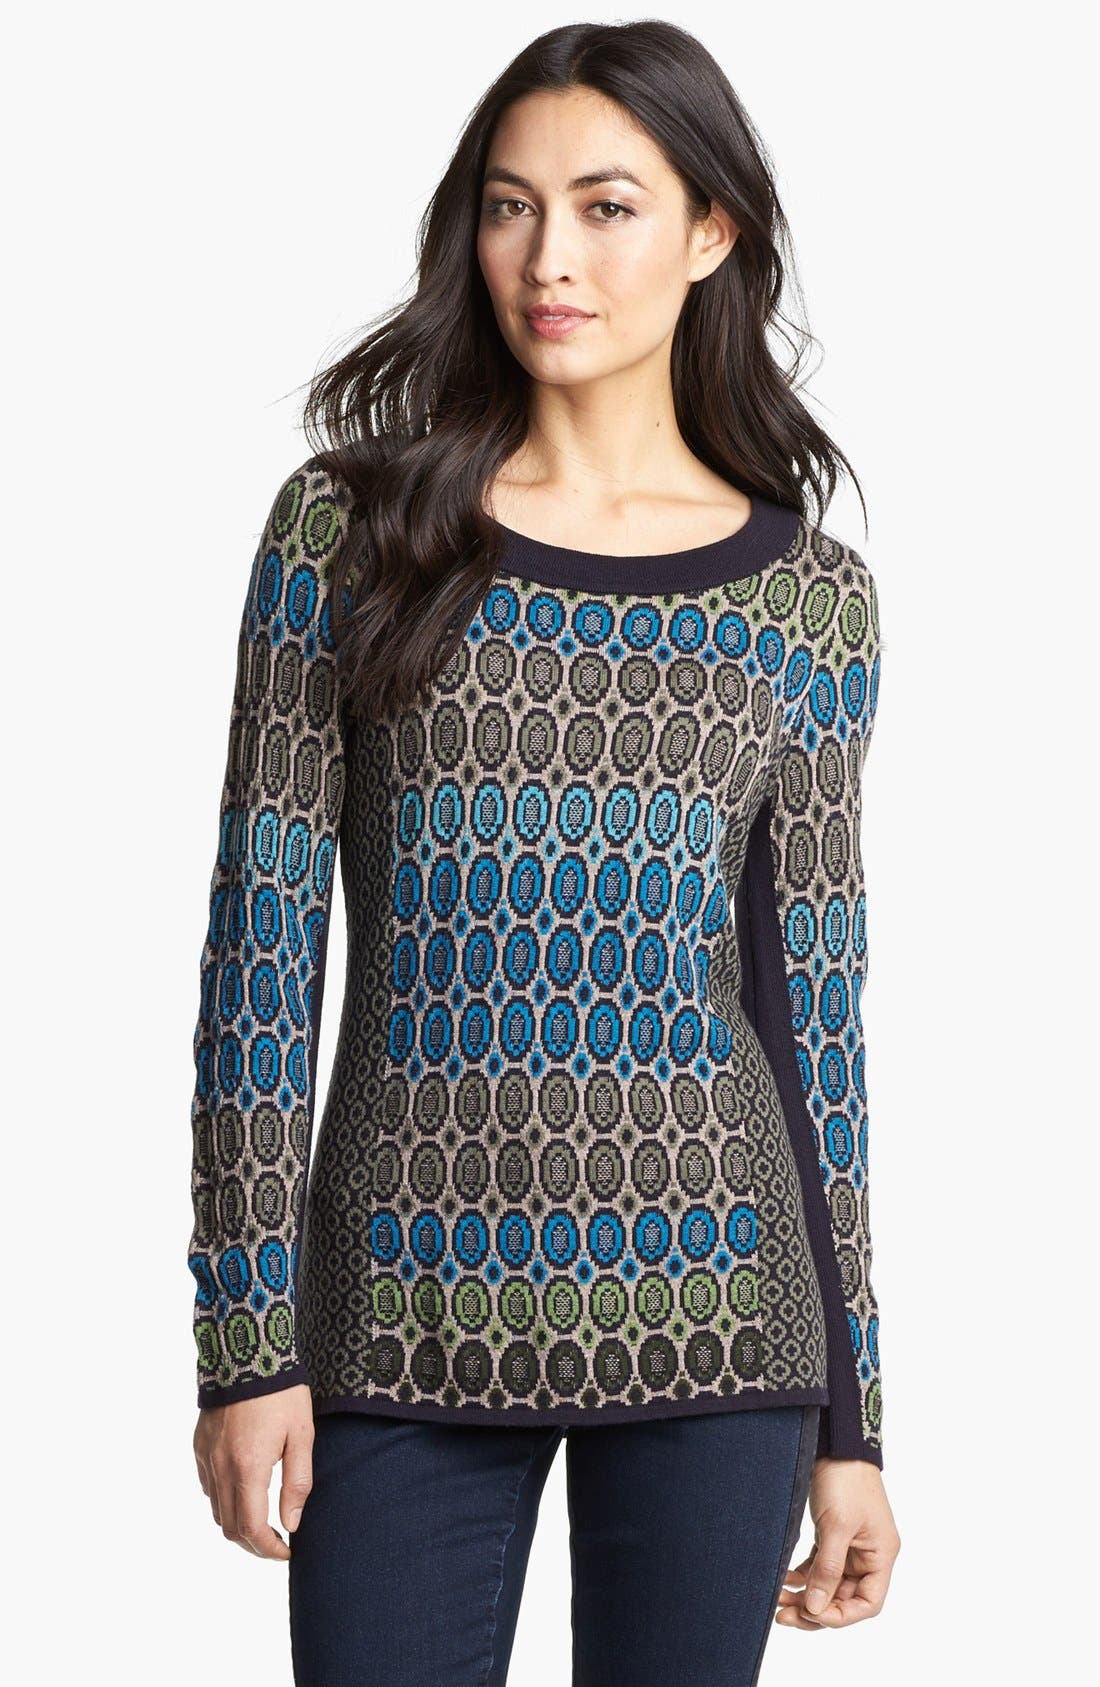 Nic + Zoe 'Geo Jacquard' Sweater,                             Main thumbnail 1, color,                             Multi